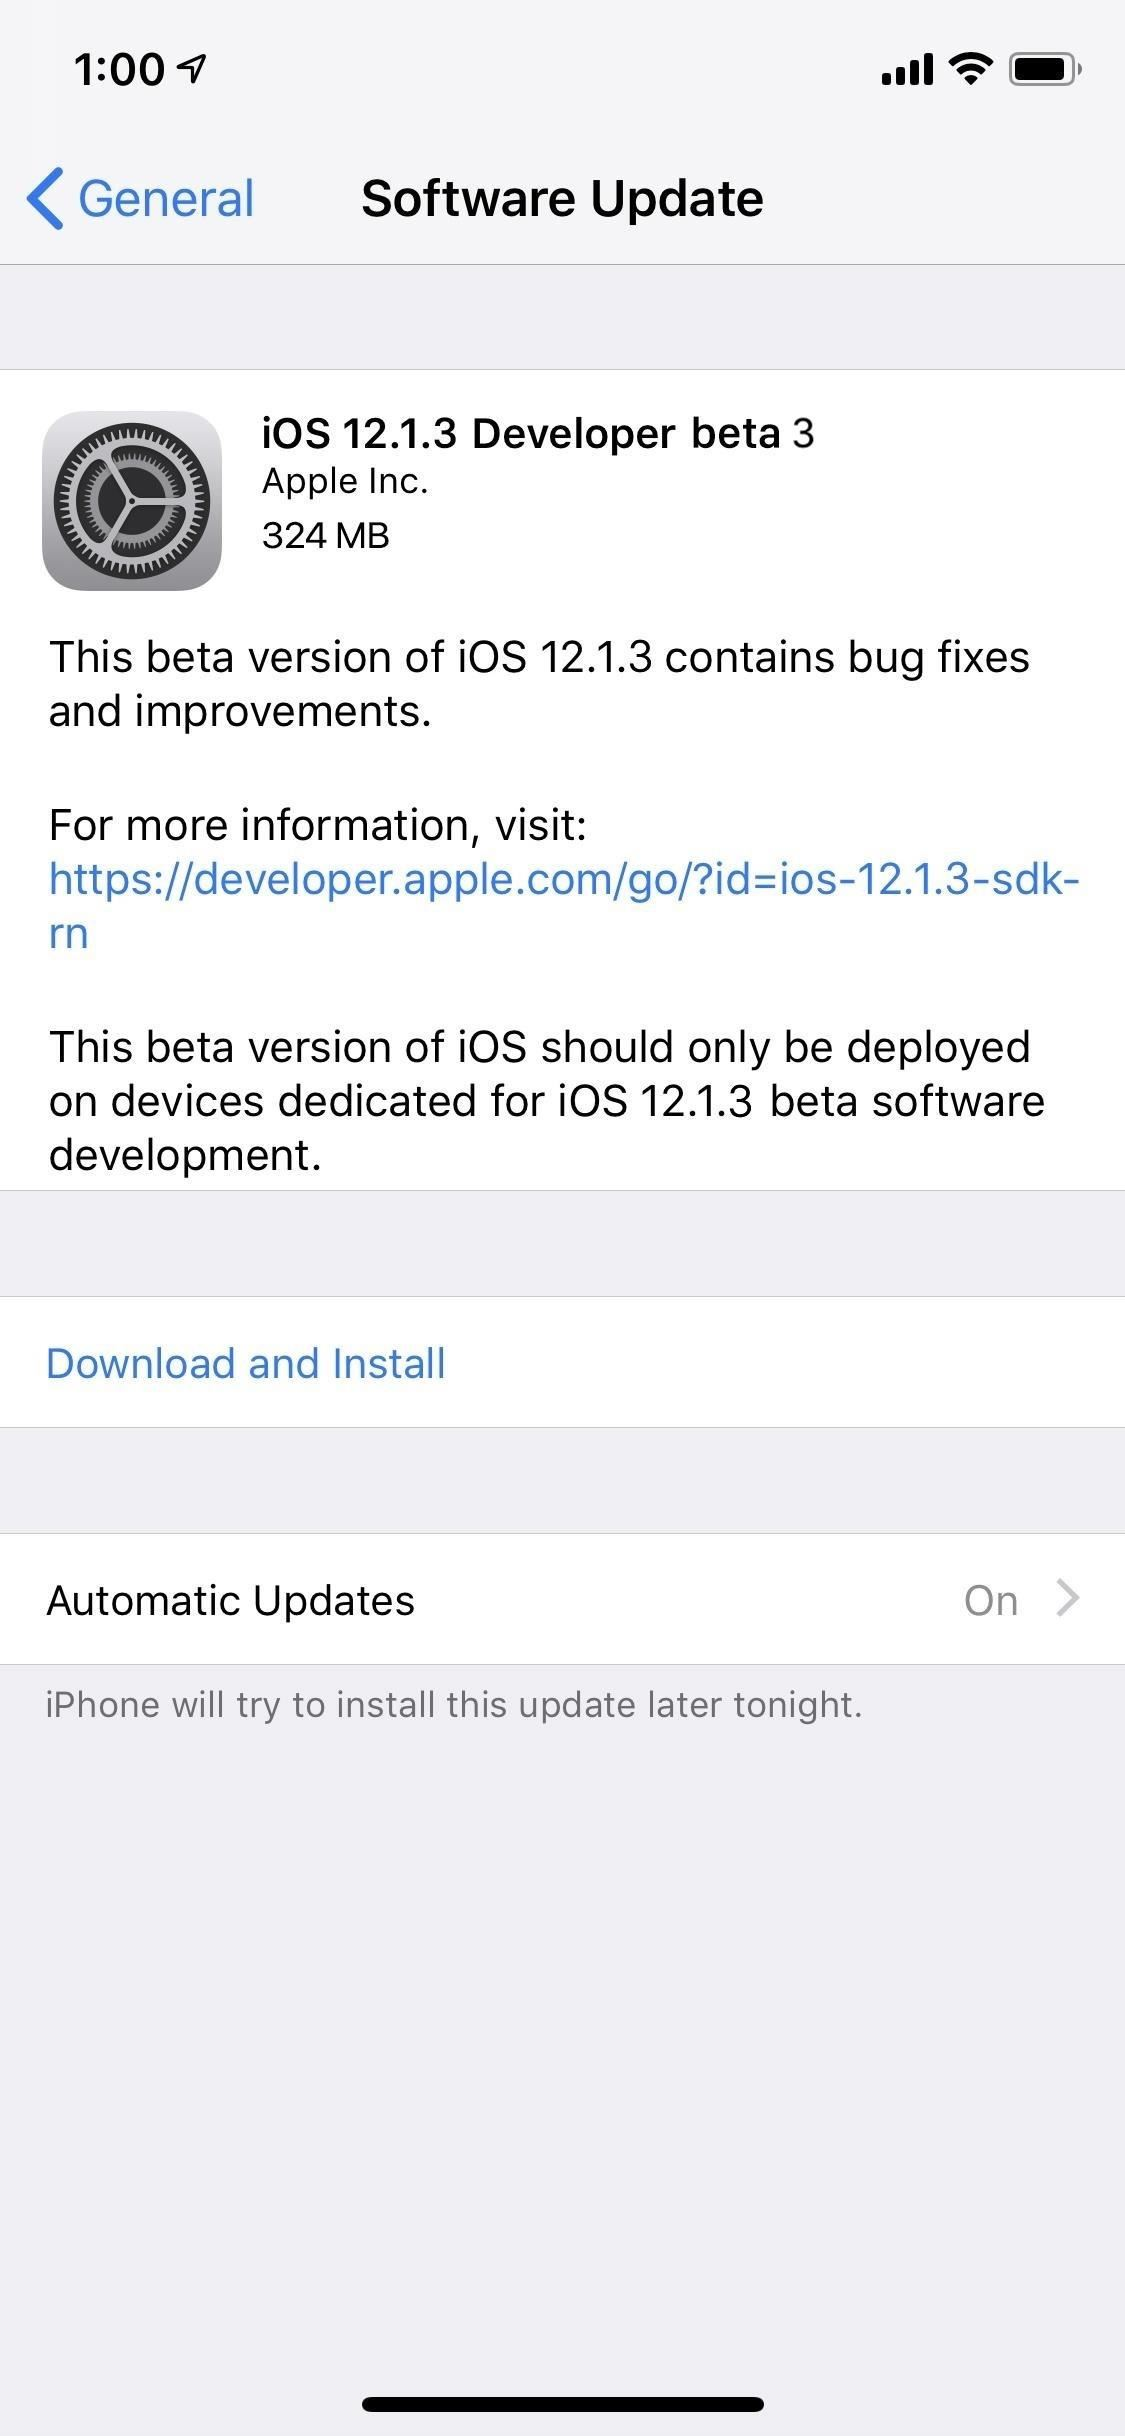 Apple releases iOS 12.1.3 Developer Beta 3 - See News